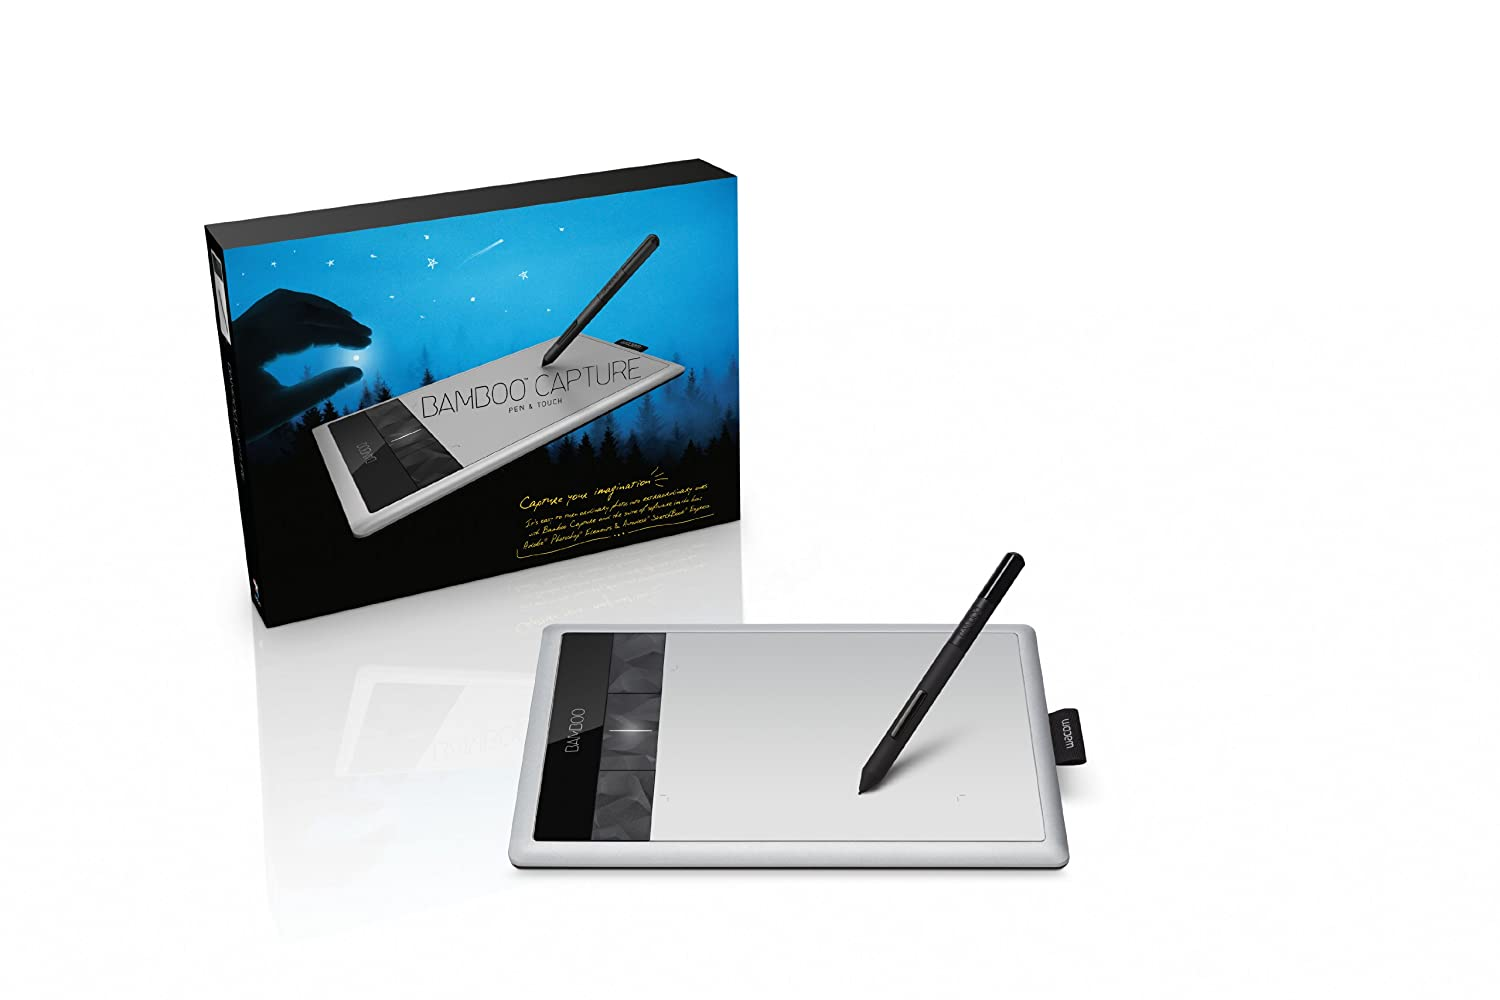 amazon com wacom bamboo capture pen and touch tablet cth470 rh amazon com Wacom Bamboo Create Drivers Wacom Bamboo Create Drivers